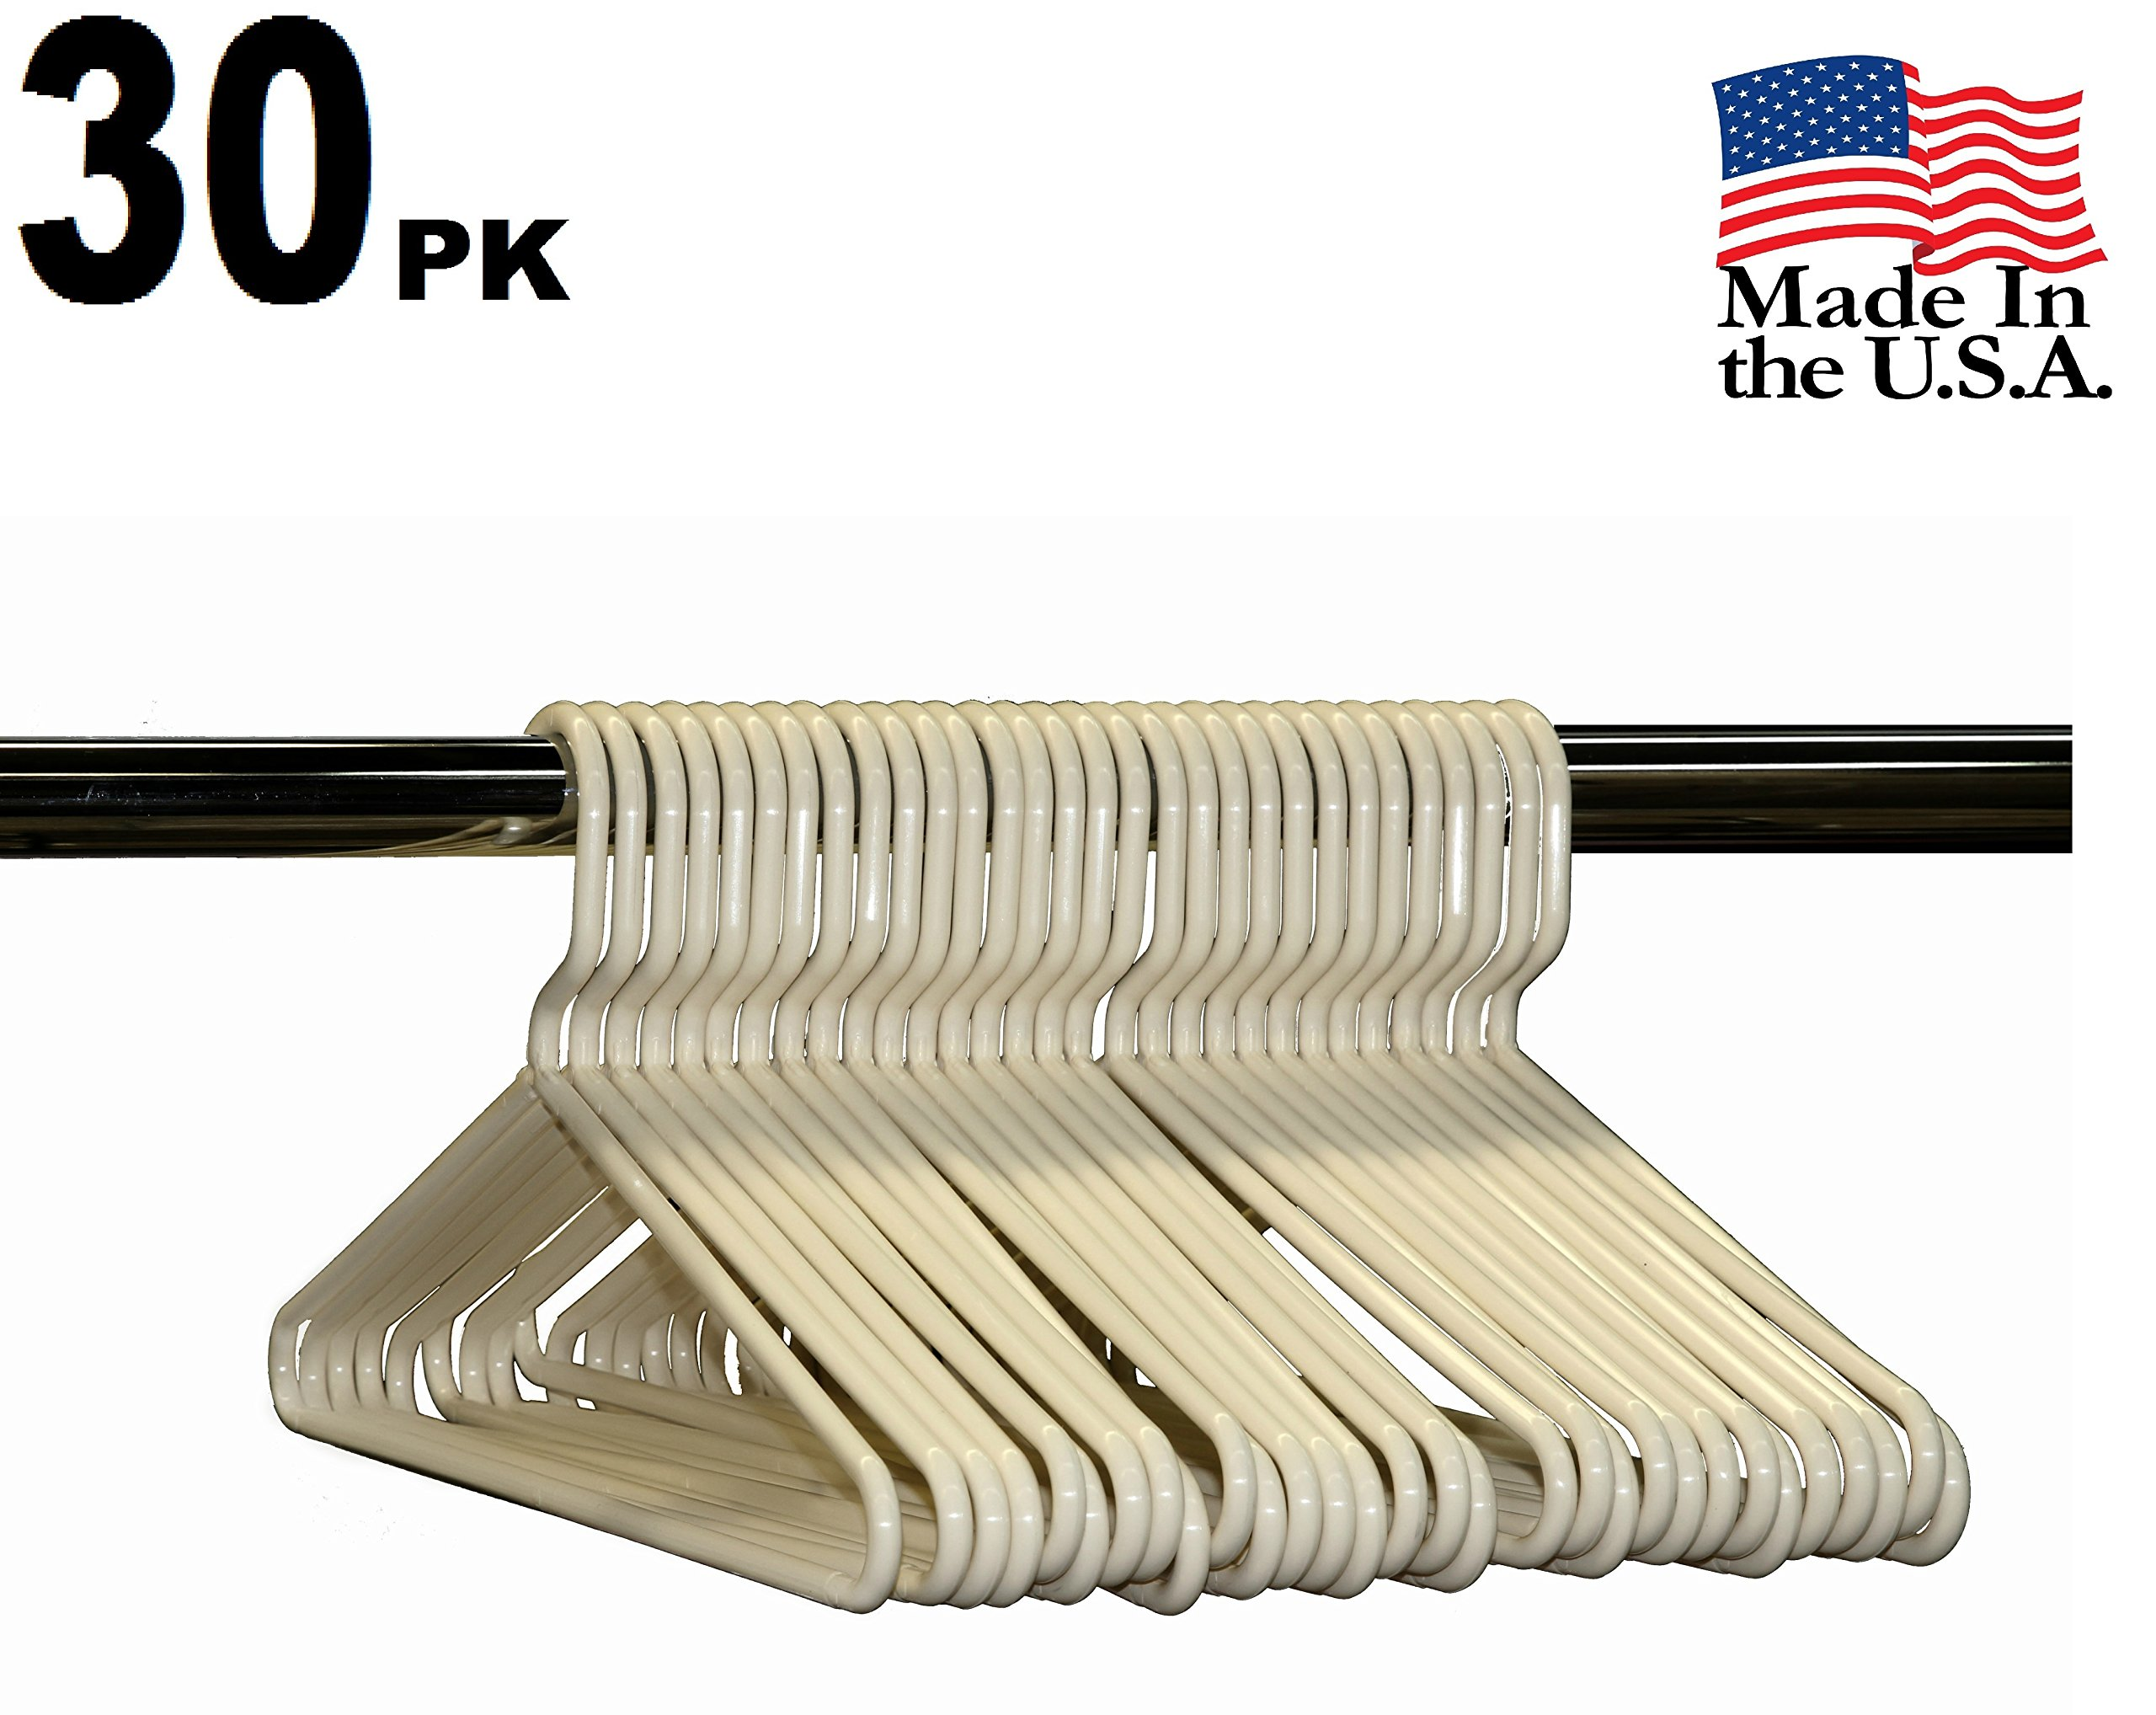 Best Durable Everyday Heavy-Duty Adult Thick Plastic Clothing Tubular Hangers - No Hooks, USA Made (Set of 30 Ivory)